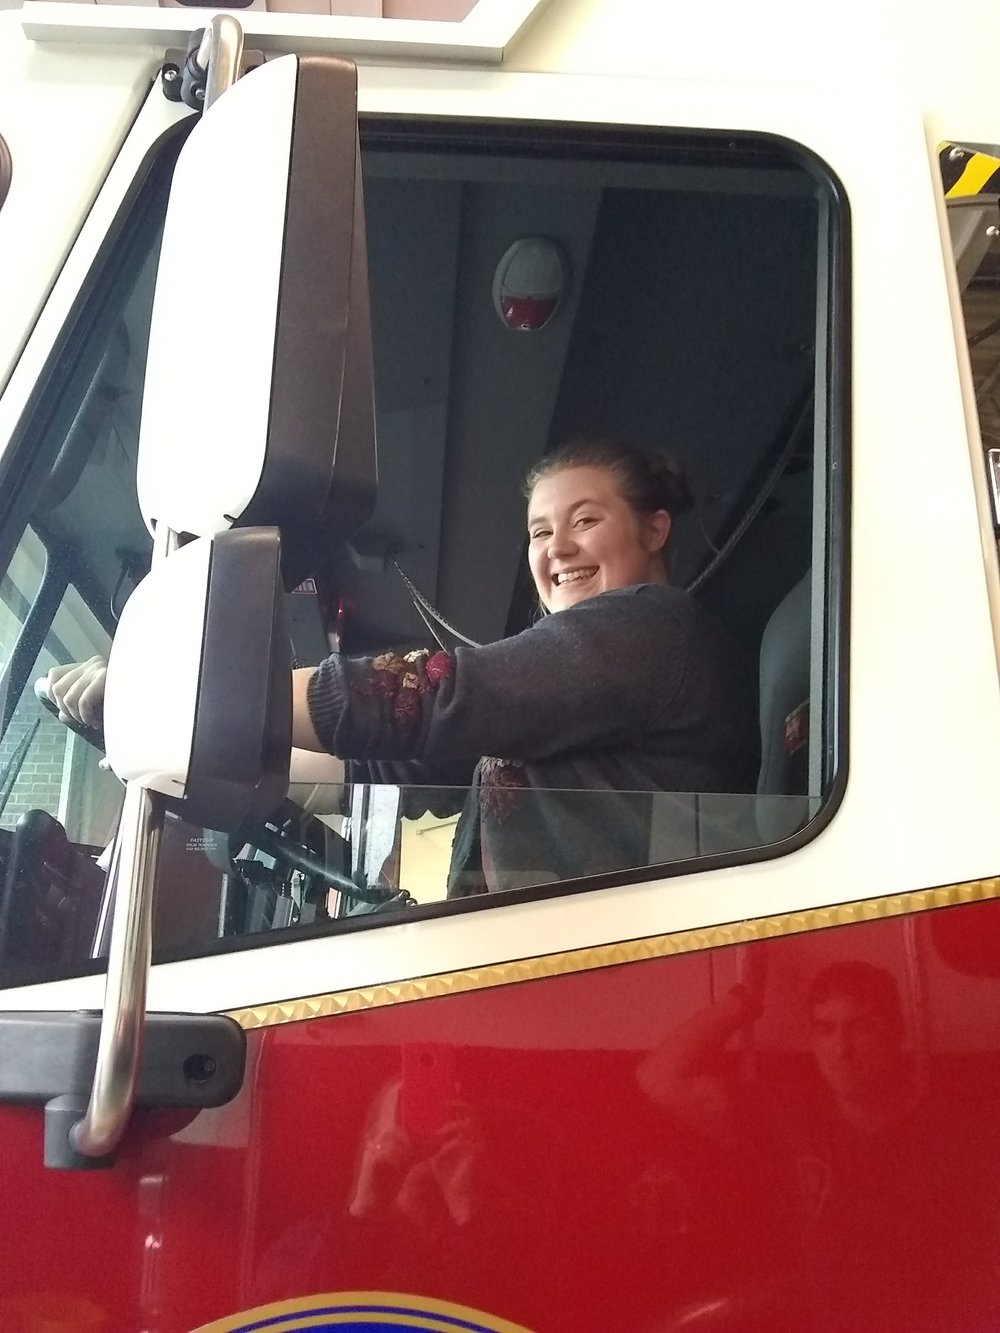 So, the guys at the fire station appreciated the cookies . . . and gave the girls a tour of the station!